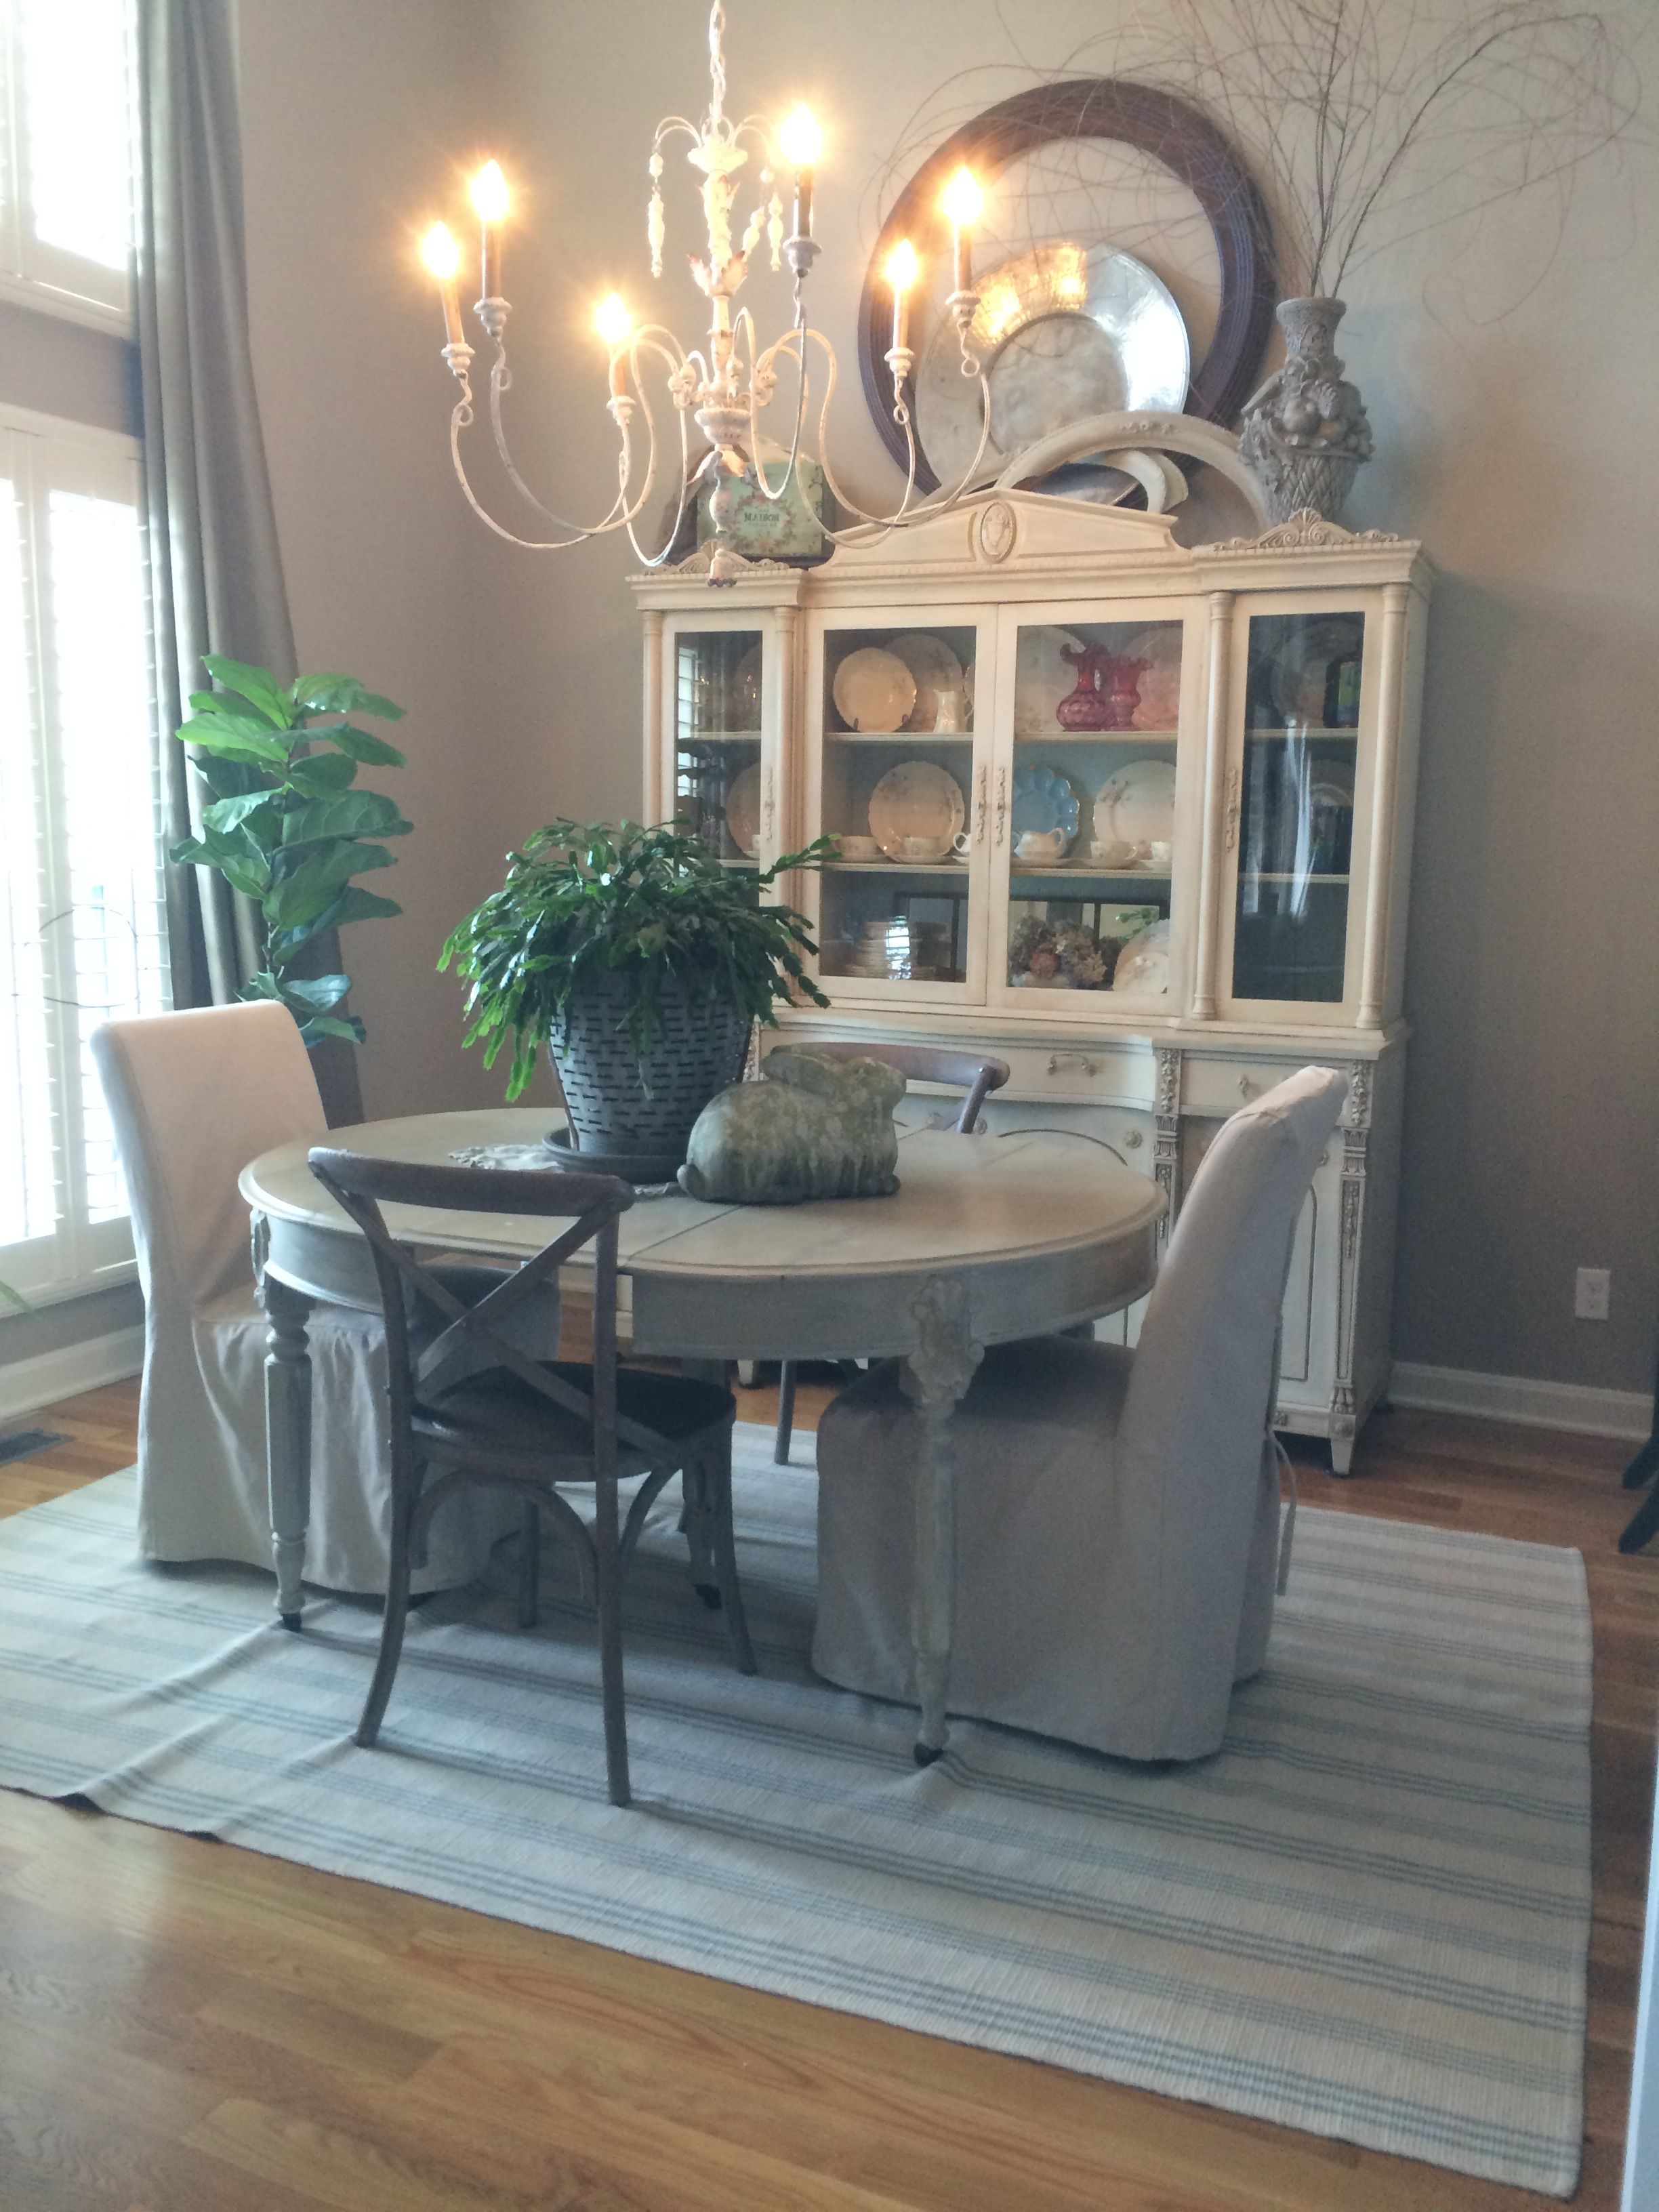 Dining Room Sherwin Williams Balanced Beige On Walls Beige